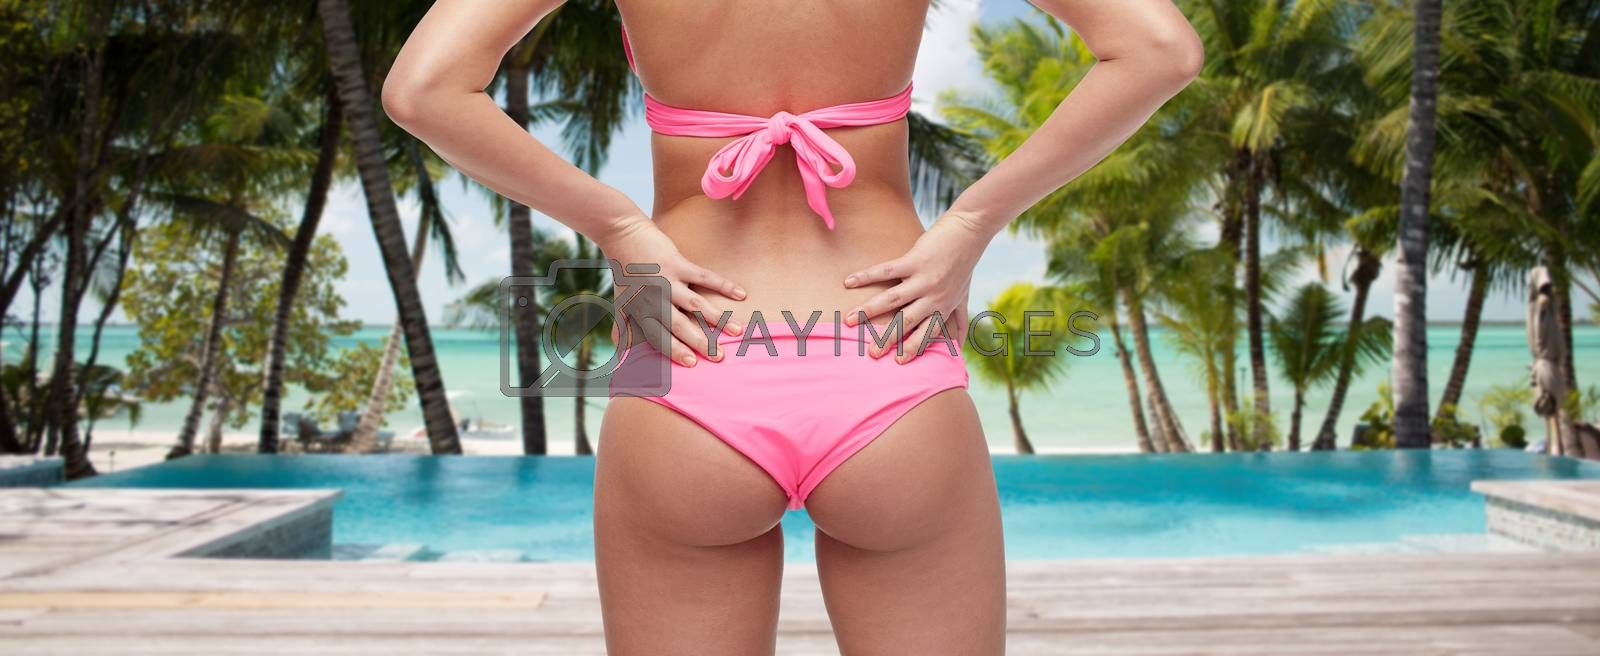 people, fashion, swimwear, summer and travel concept - close up of young woman buttocks in pink bikini over tropical beach with swimming pool background